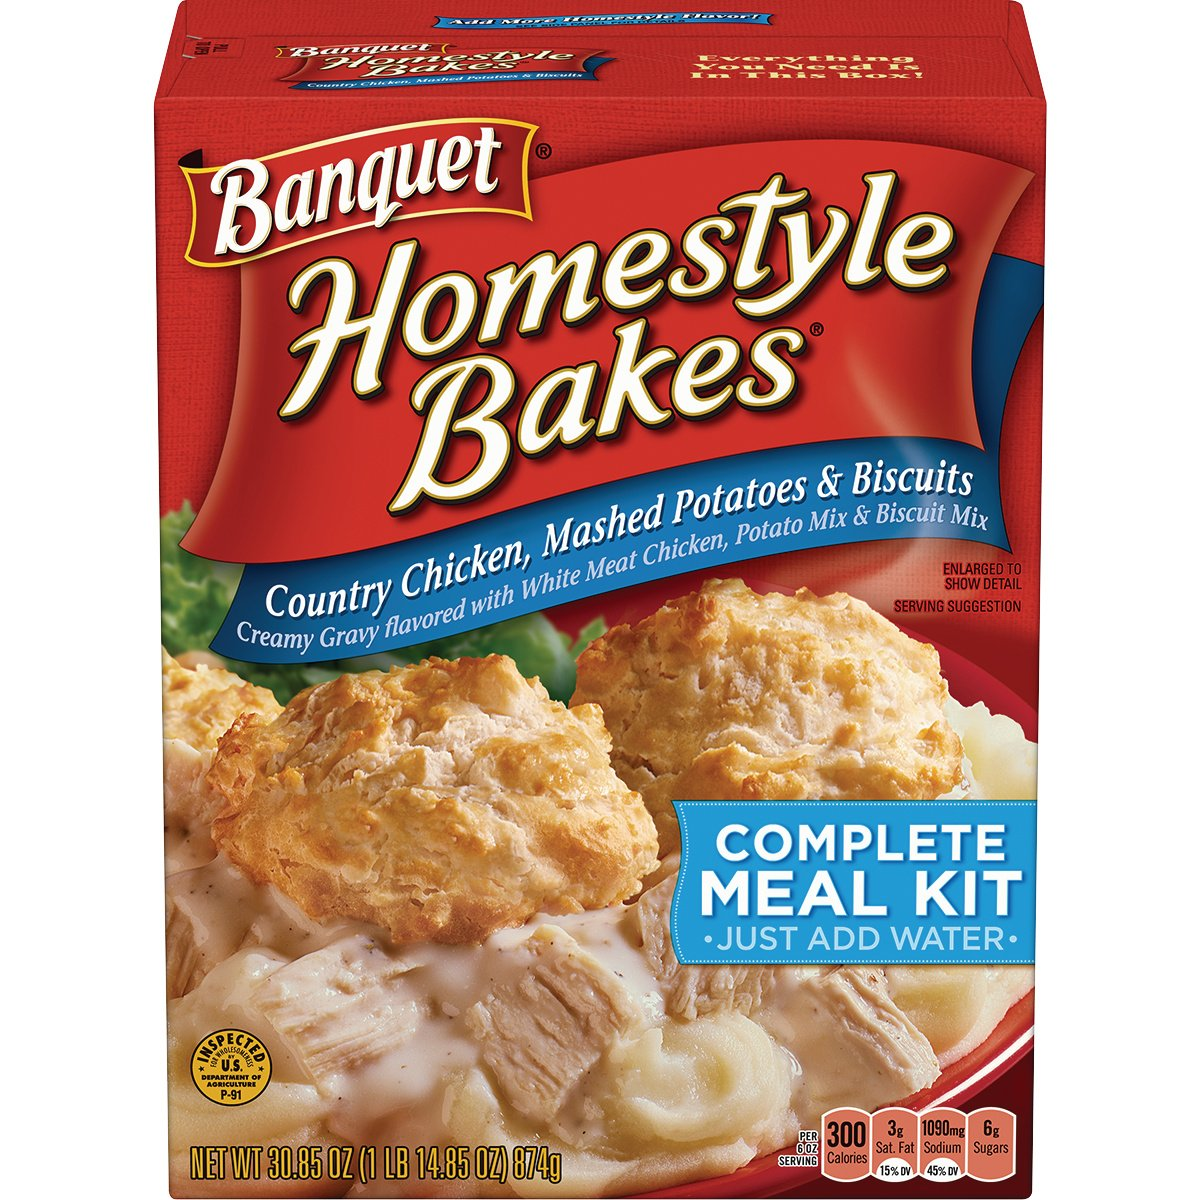 BanquetHomestyle Bakes Country Chicken, 30.9-Ounce Boxes (Pack of 6)